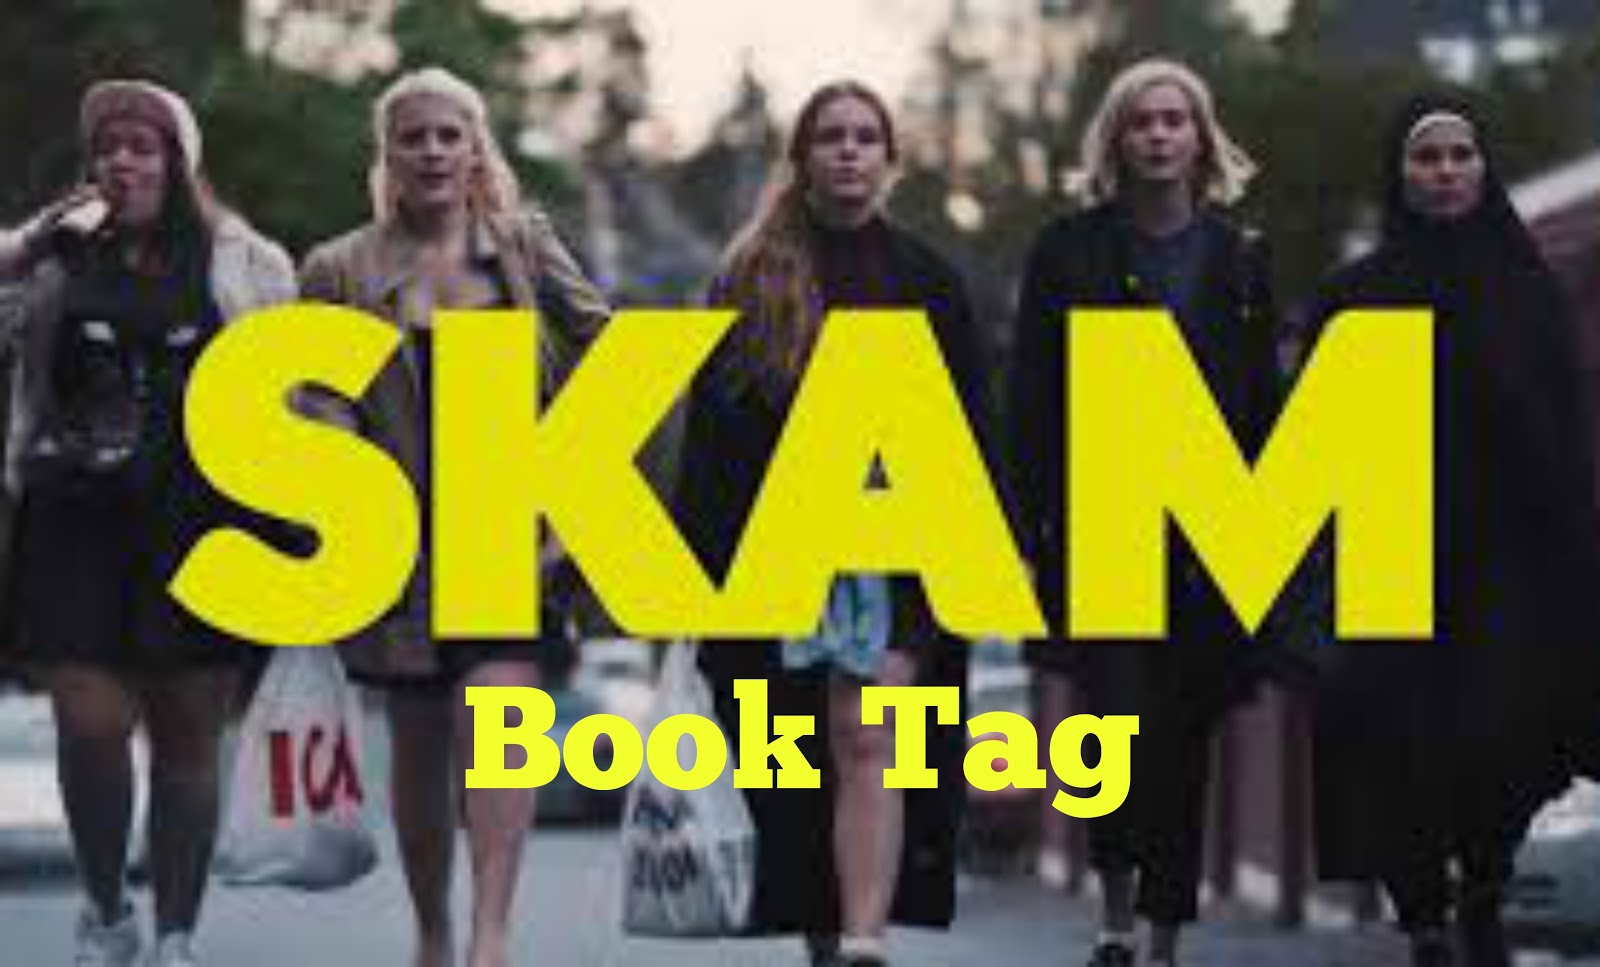 Book Tag Original: Skam